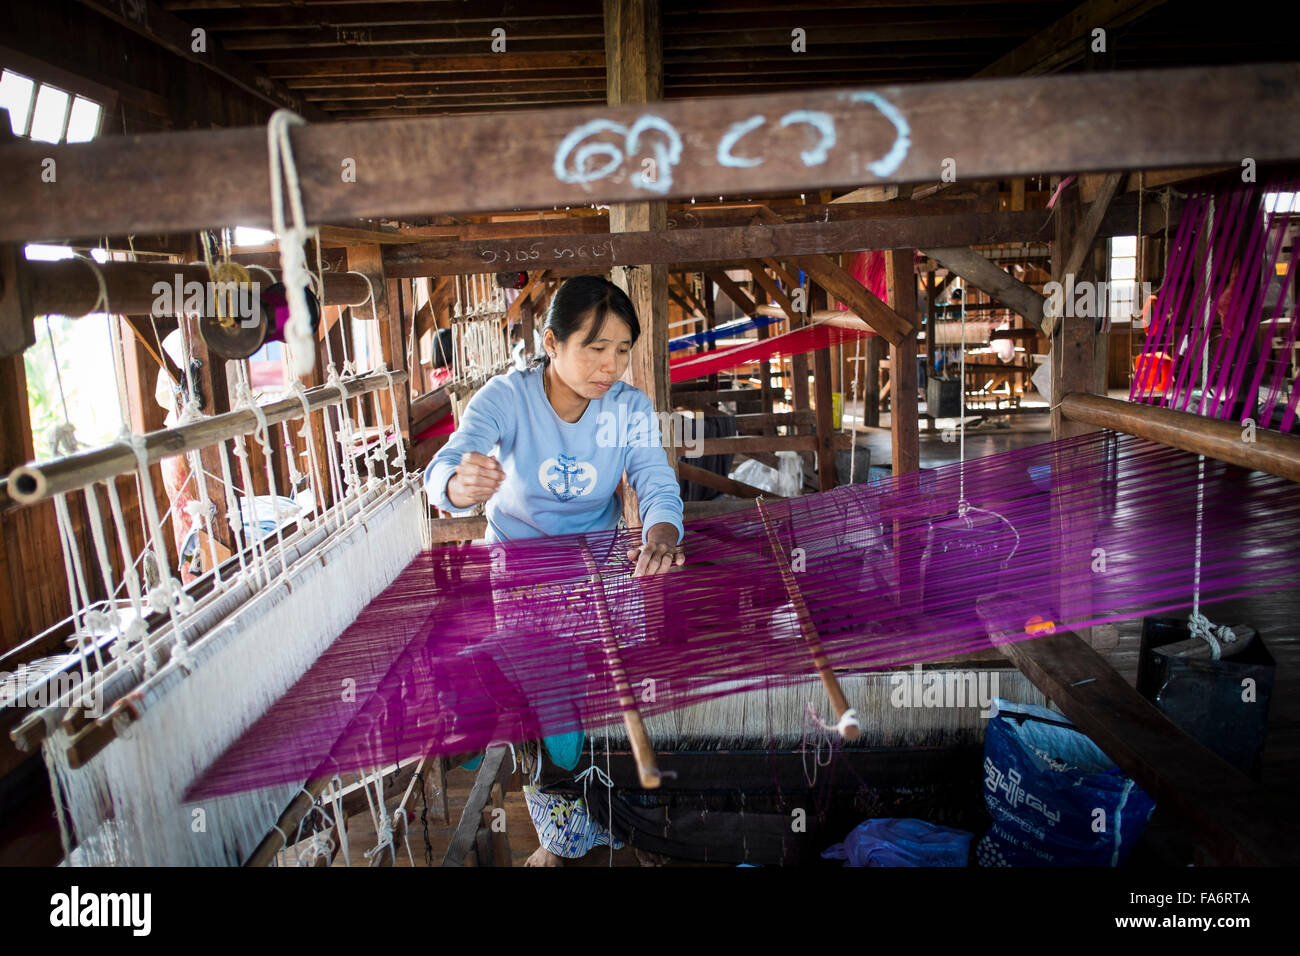 Fabrication de textiles birmans traditionnels à côté du lac Inle, Myanmar Photo Stock